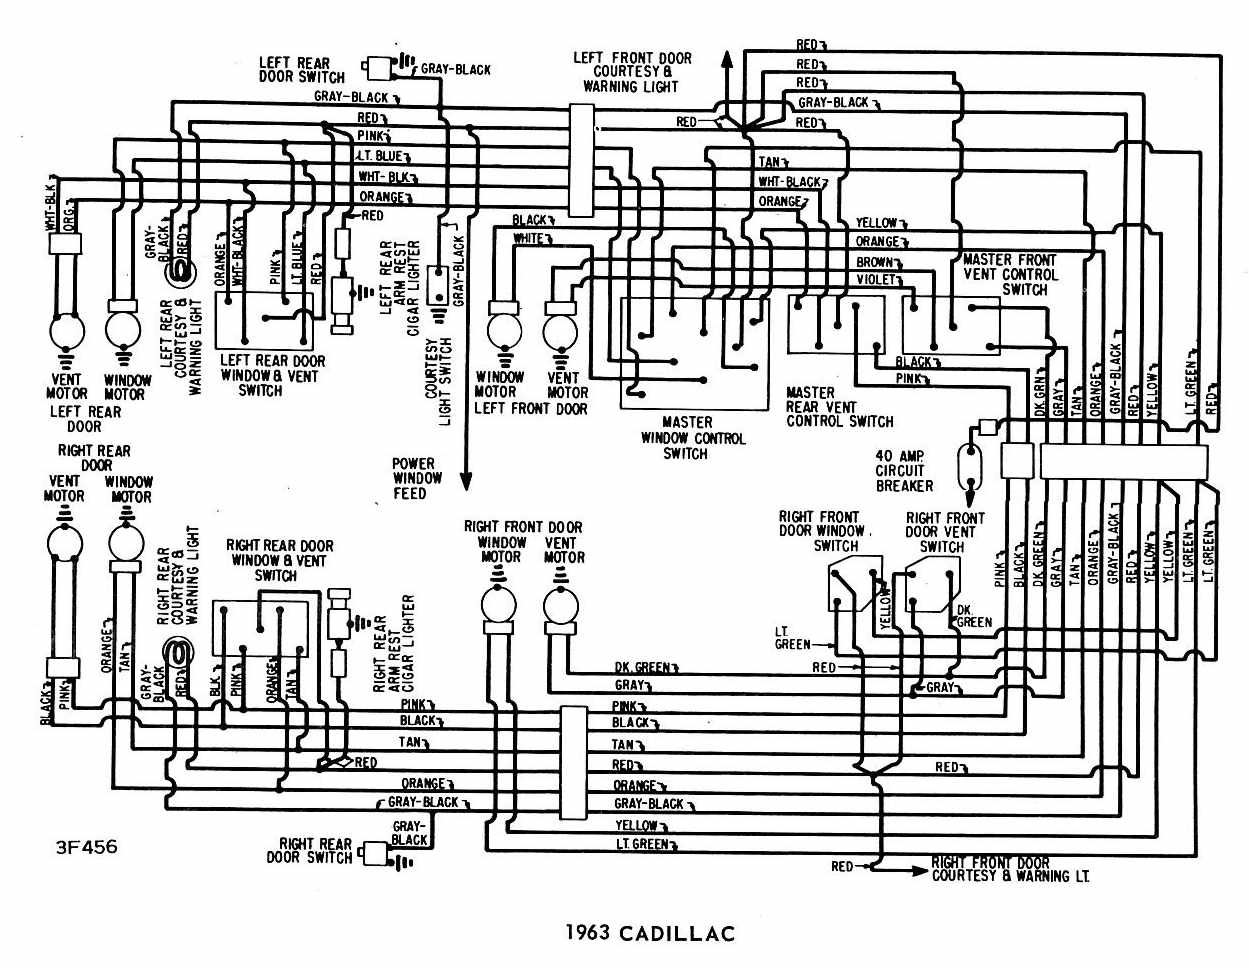 Cadillac 1963 Windows Wiring Diagram